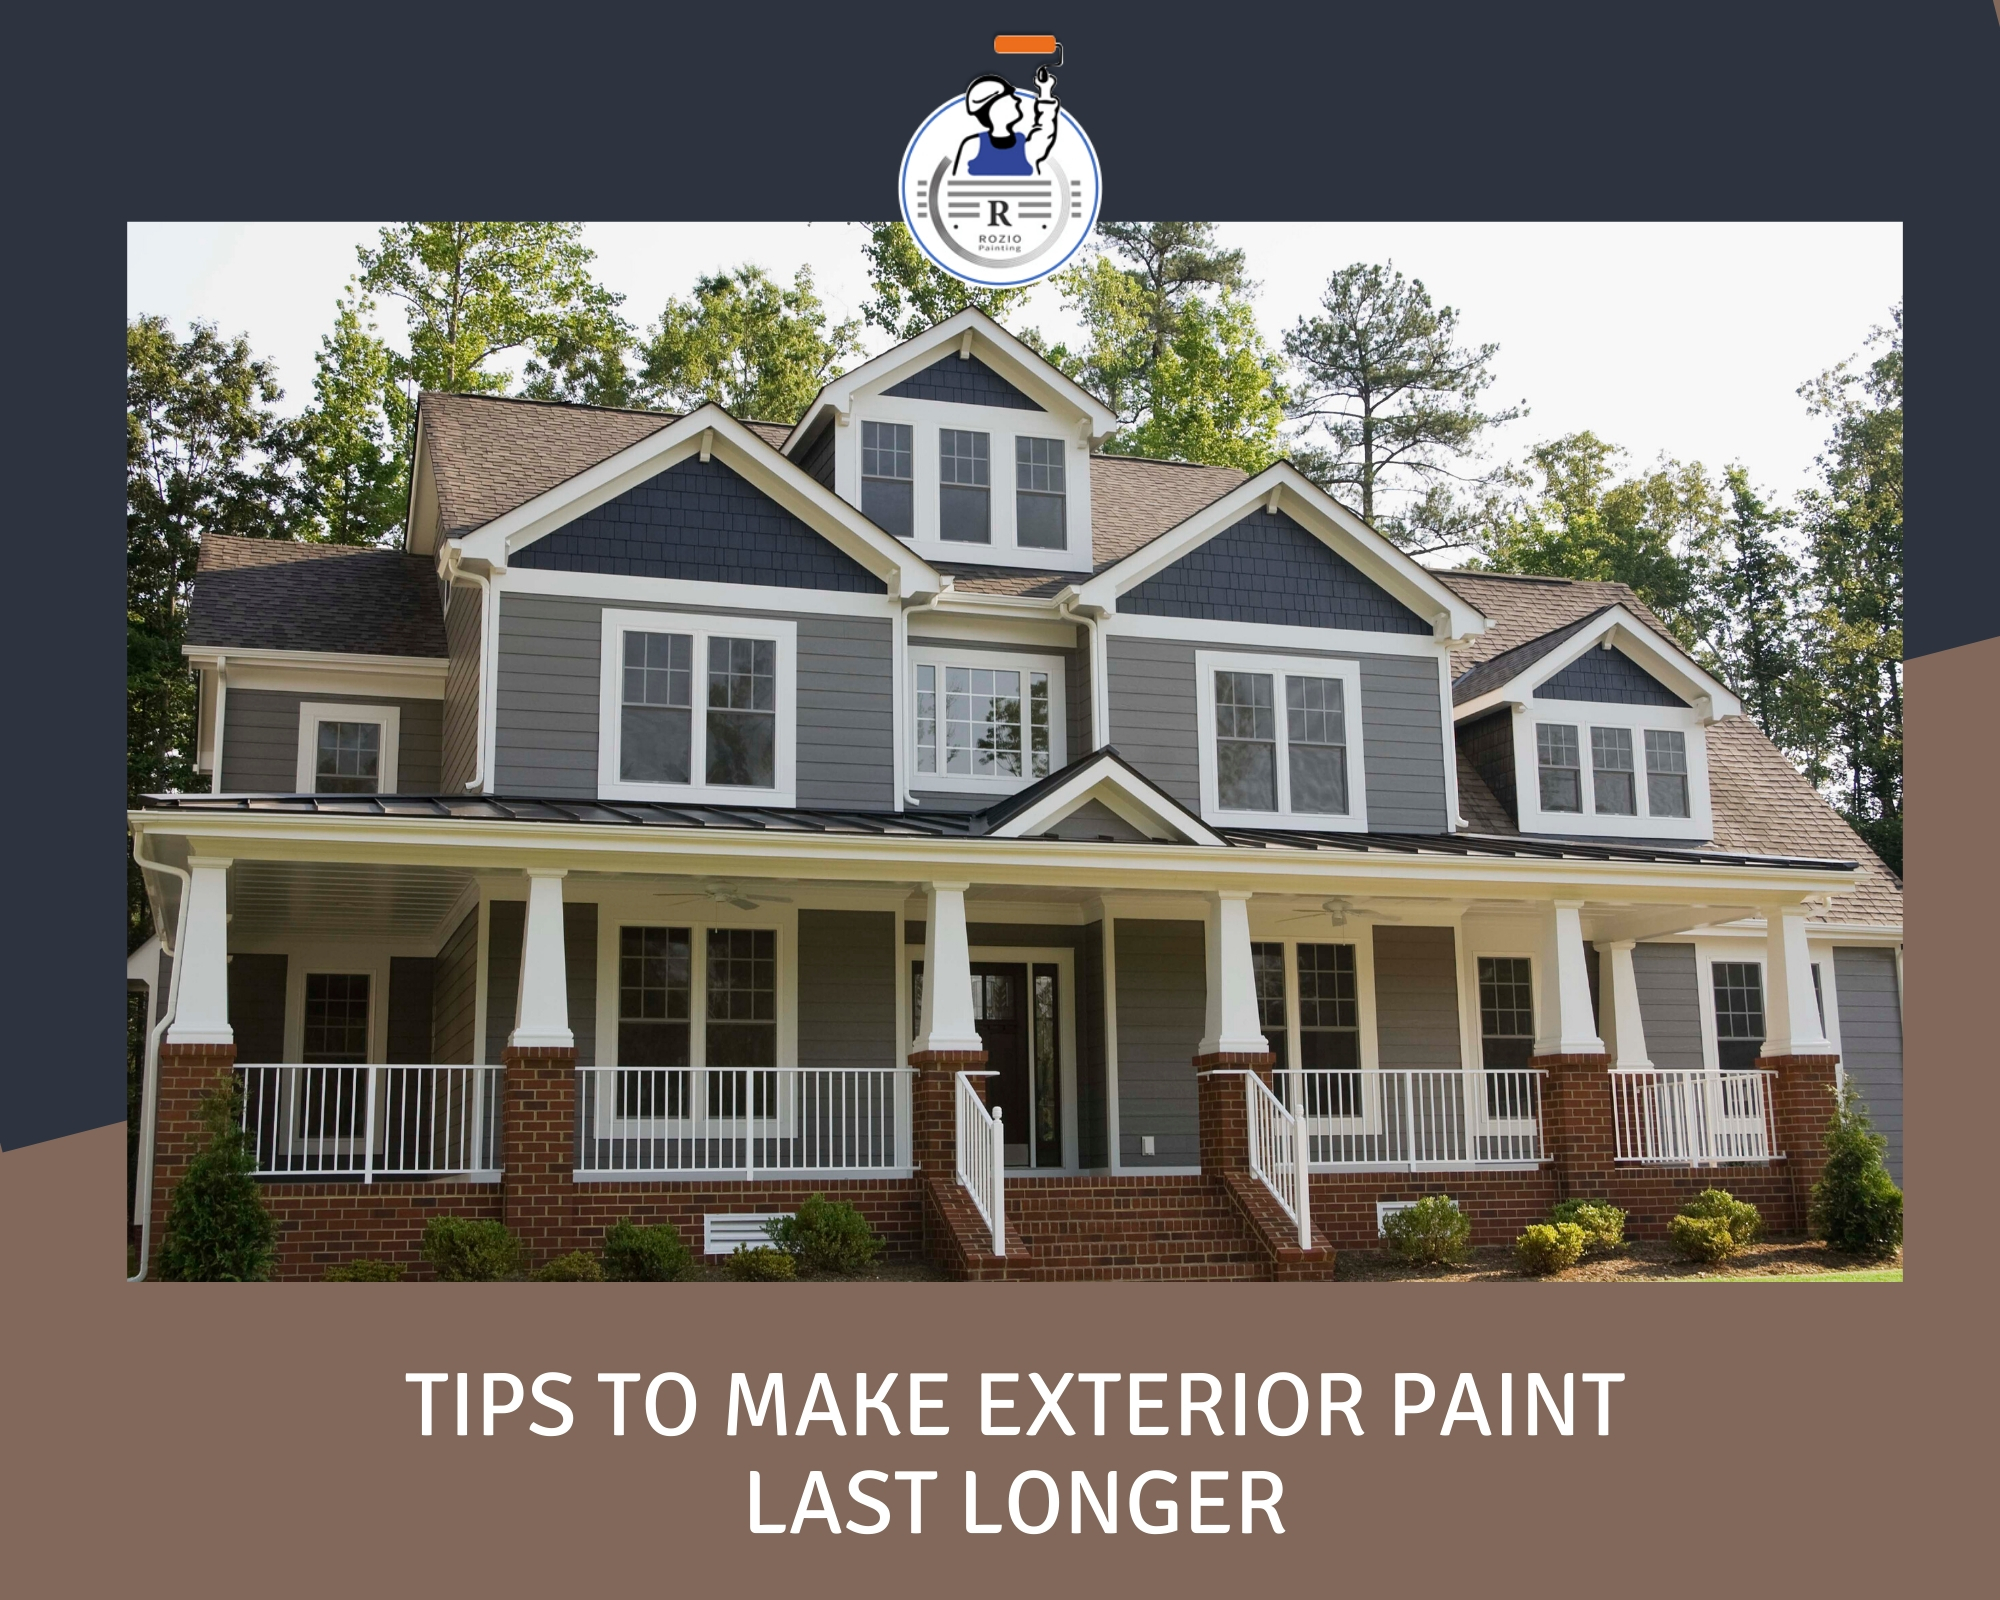 Tips to make Exterior Paint Last Longer